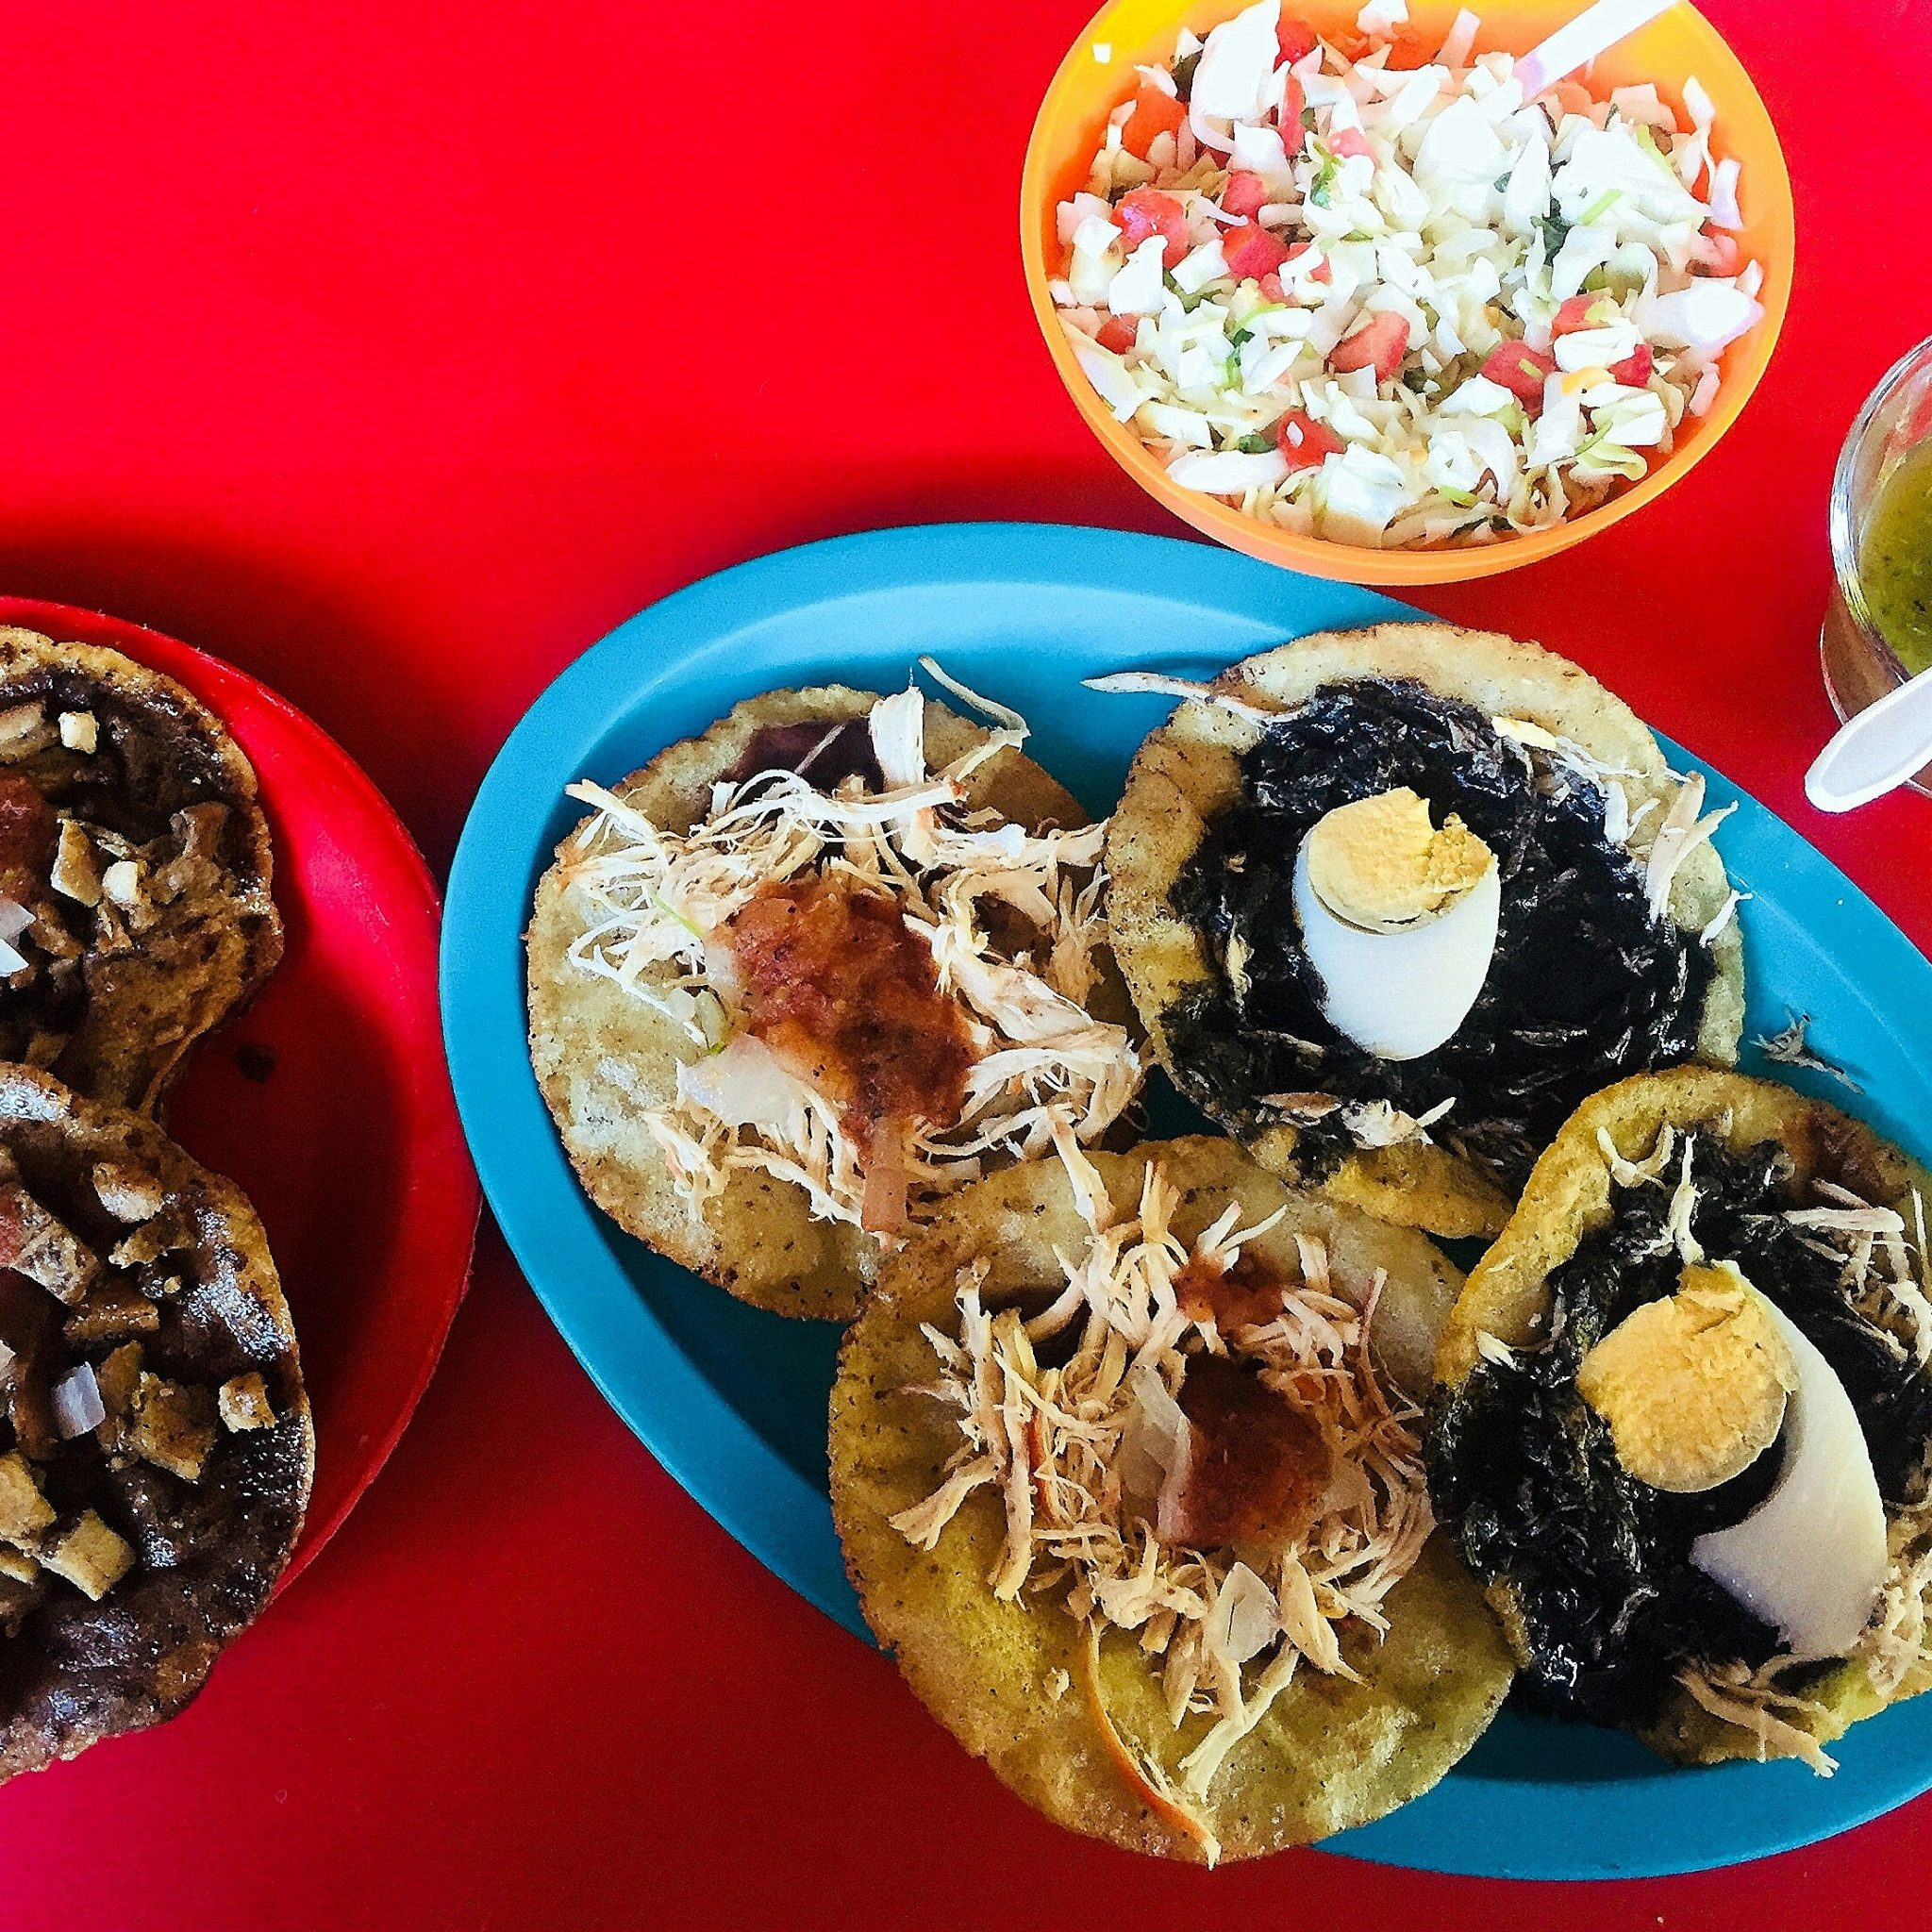 Salbutes and panuchos abound in yucatecan homes and bars, starting at breakfast.